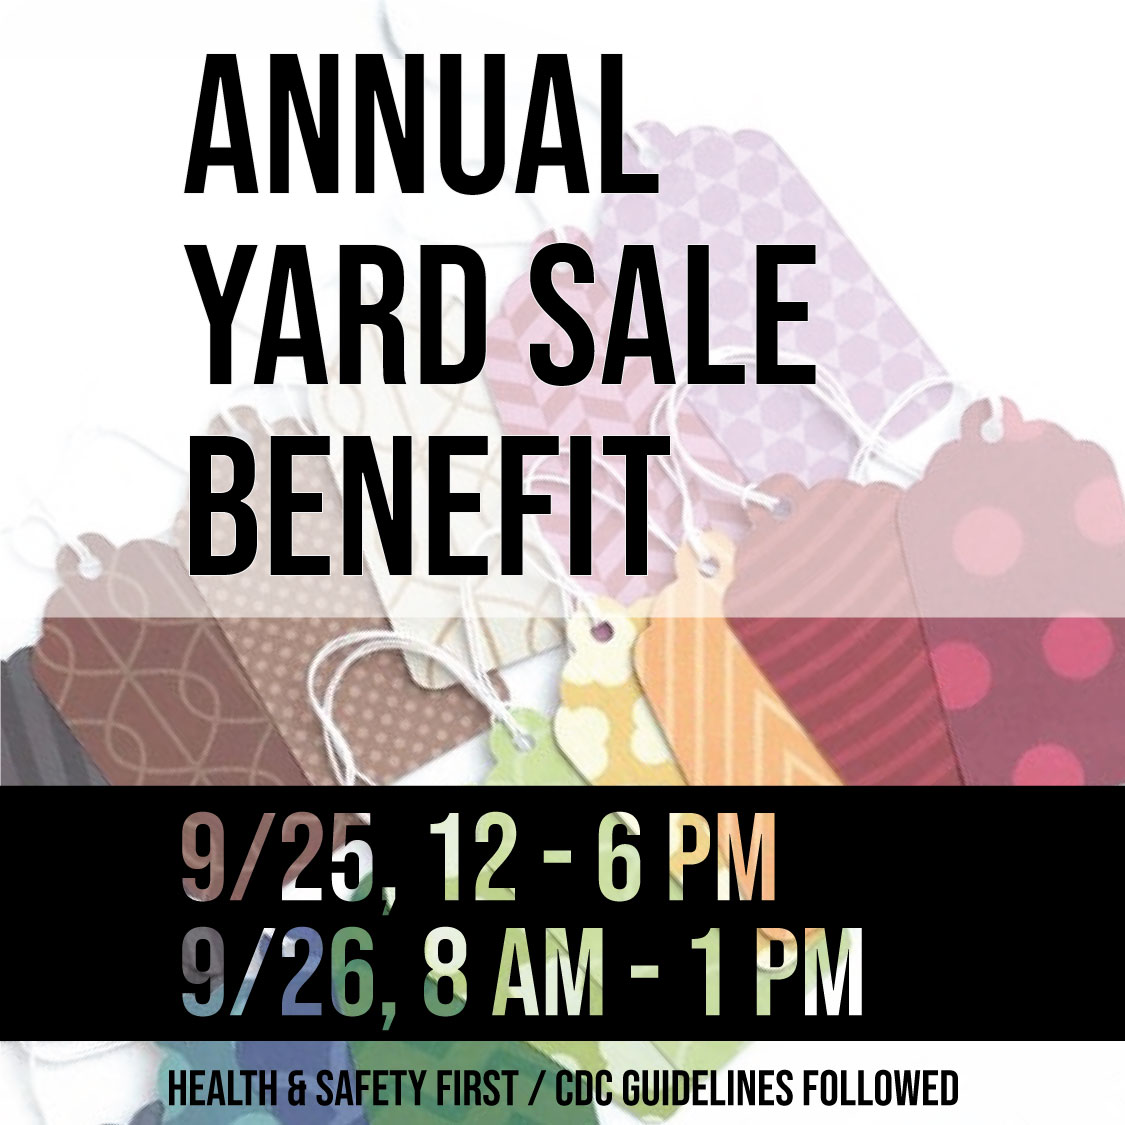 https://tryonartsandcrafts.org/wp-content/uploads/2020/08/Yard-Sale-Home-Page-Button-2.jpg